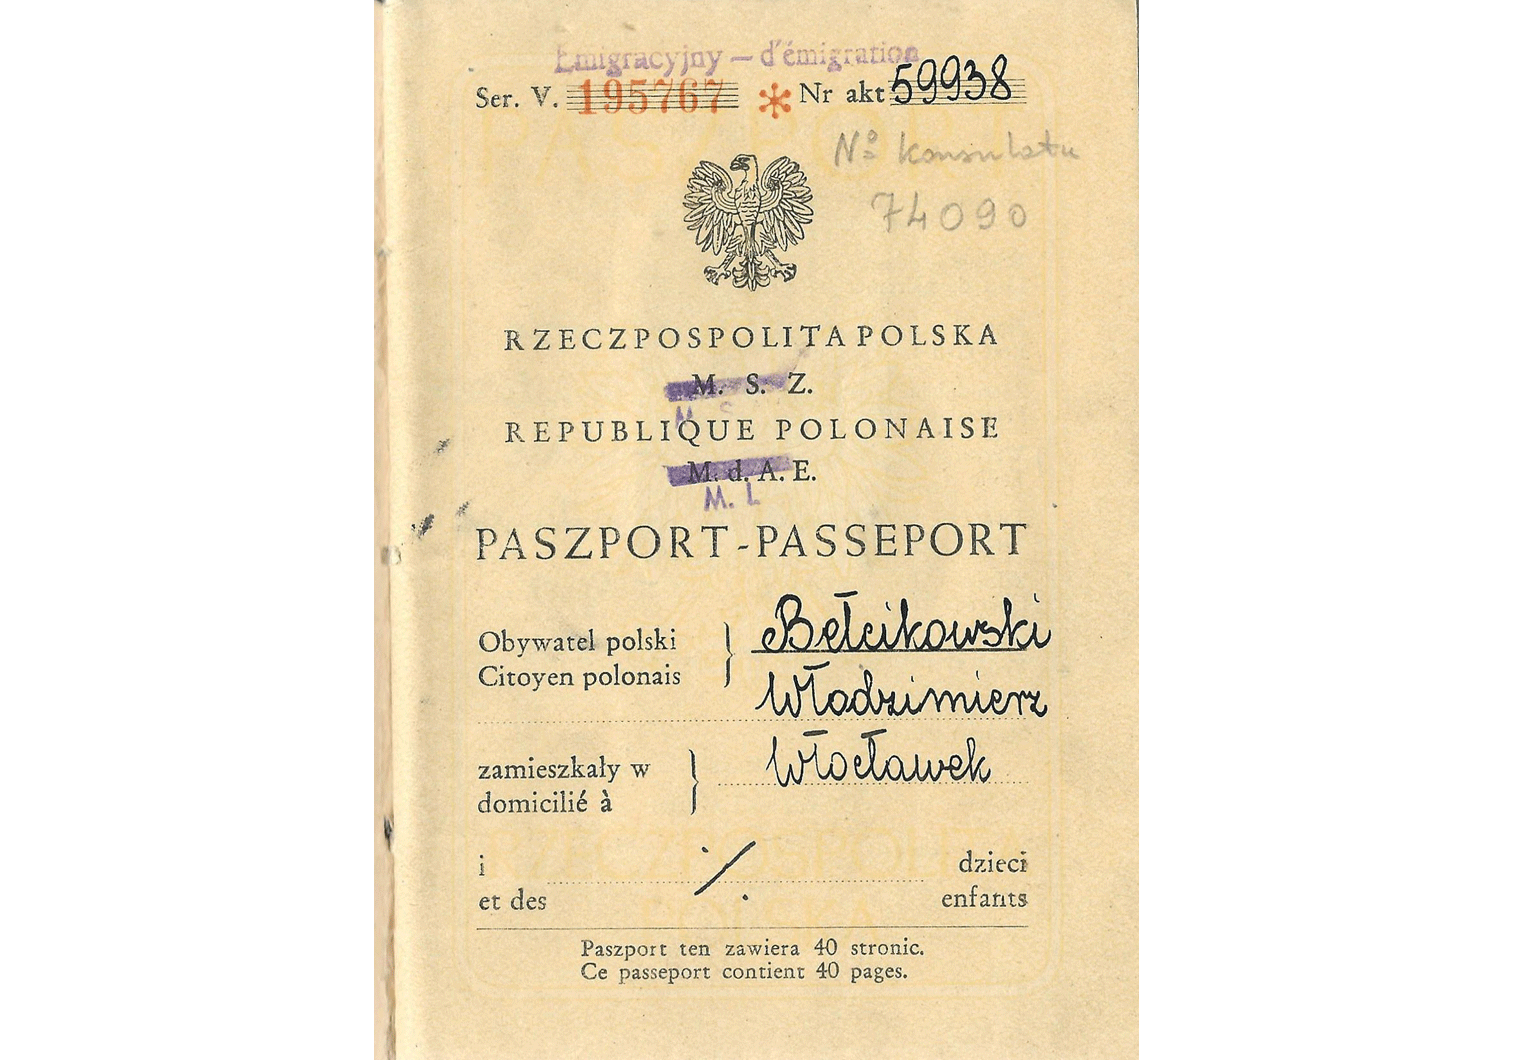 Late Polish Republic passport